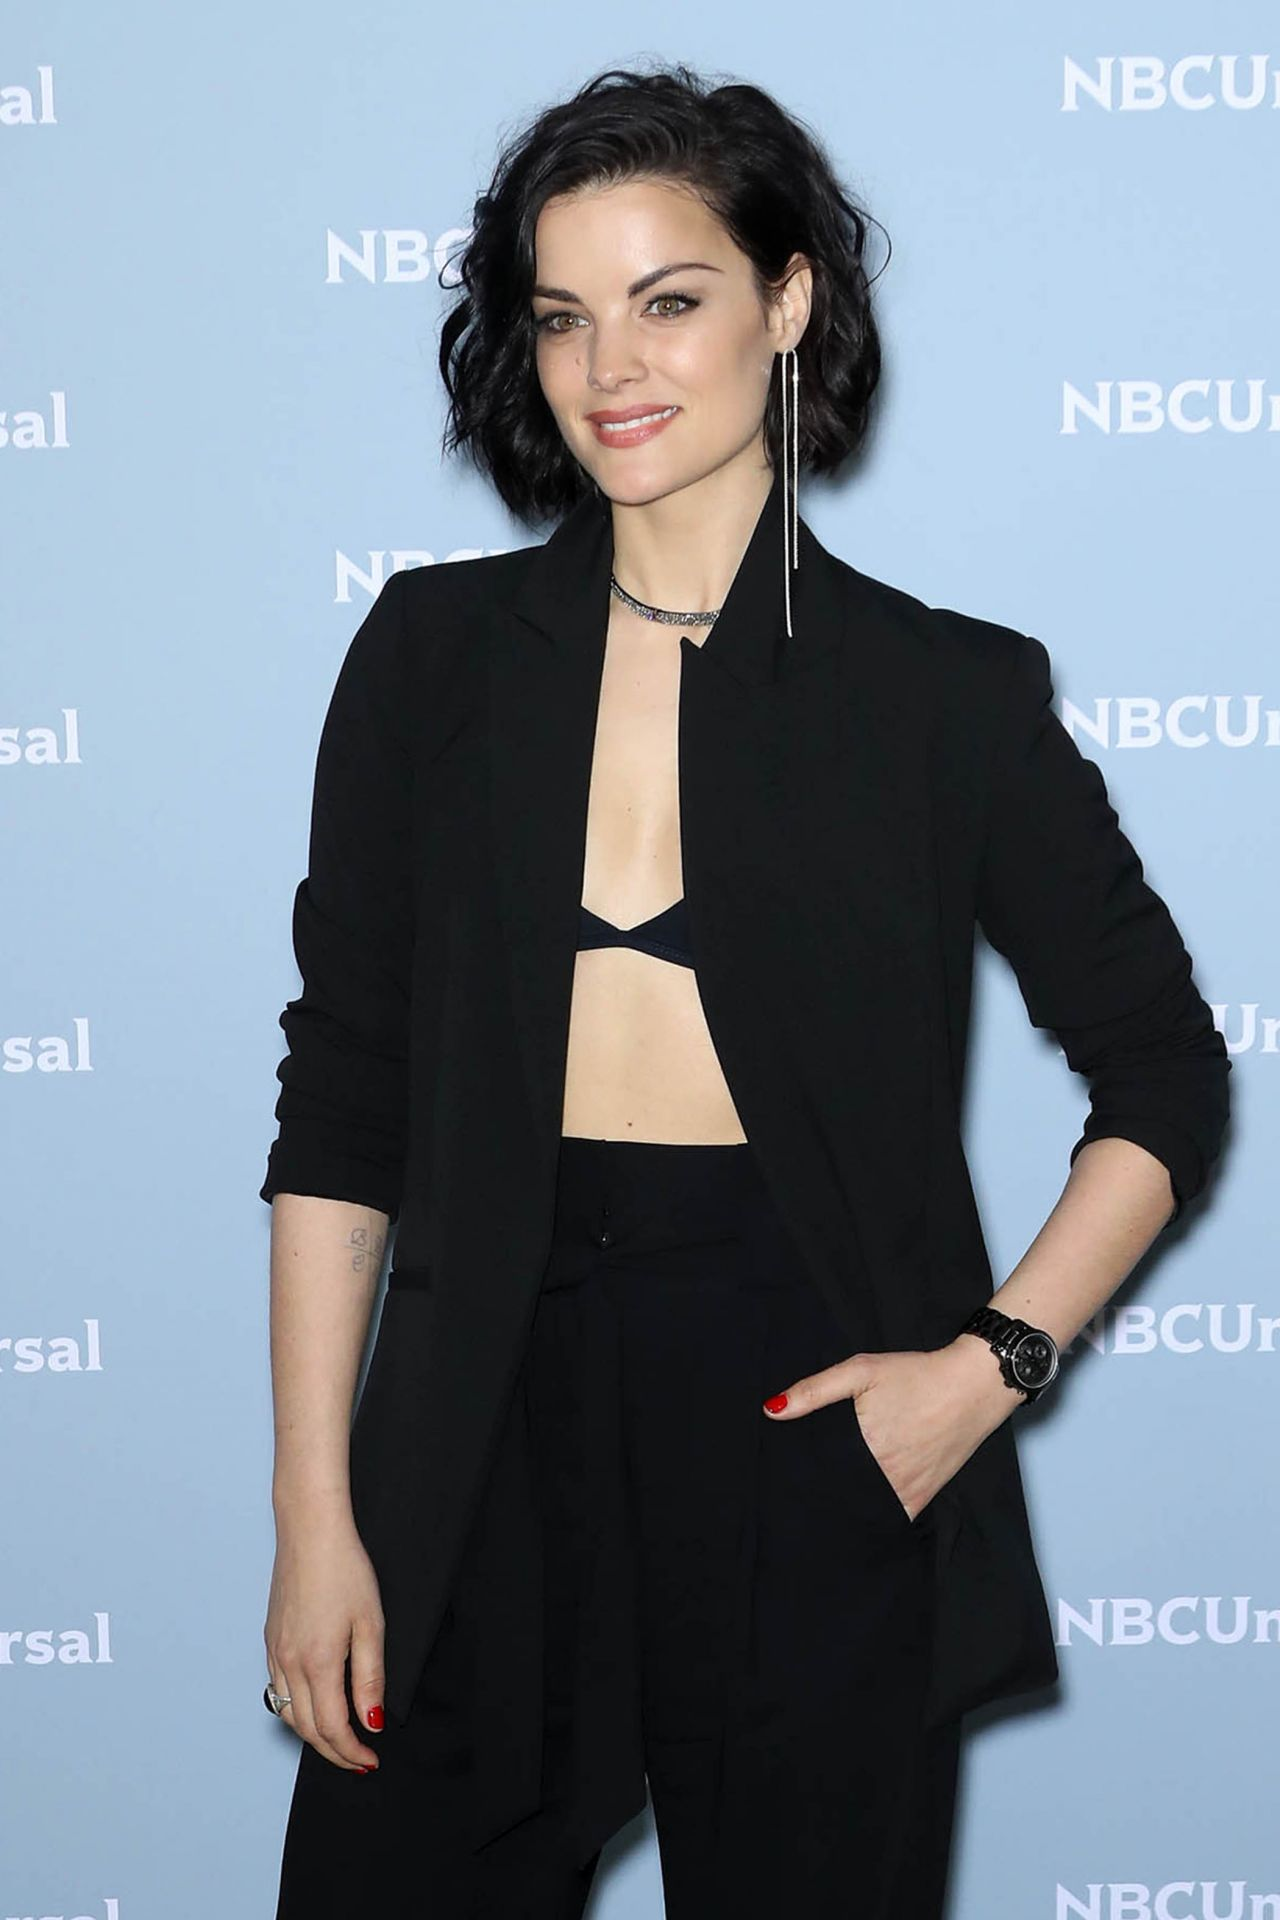 Jaimie Alexander 2018 Nbcuniversal Upfront In Nyc